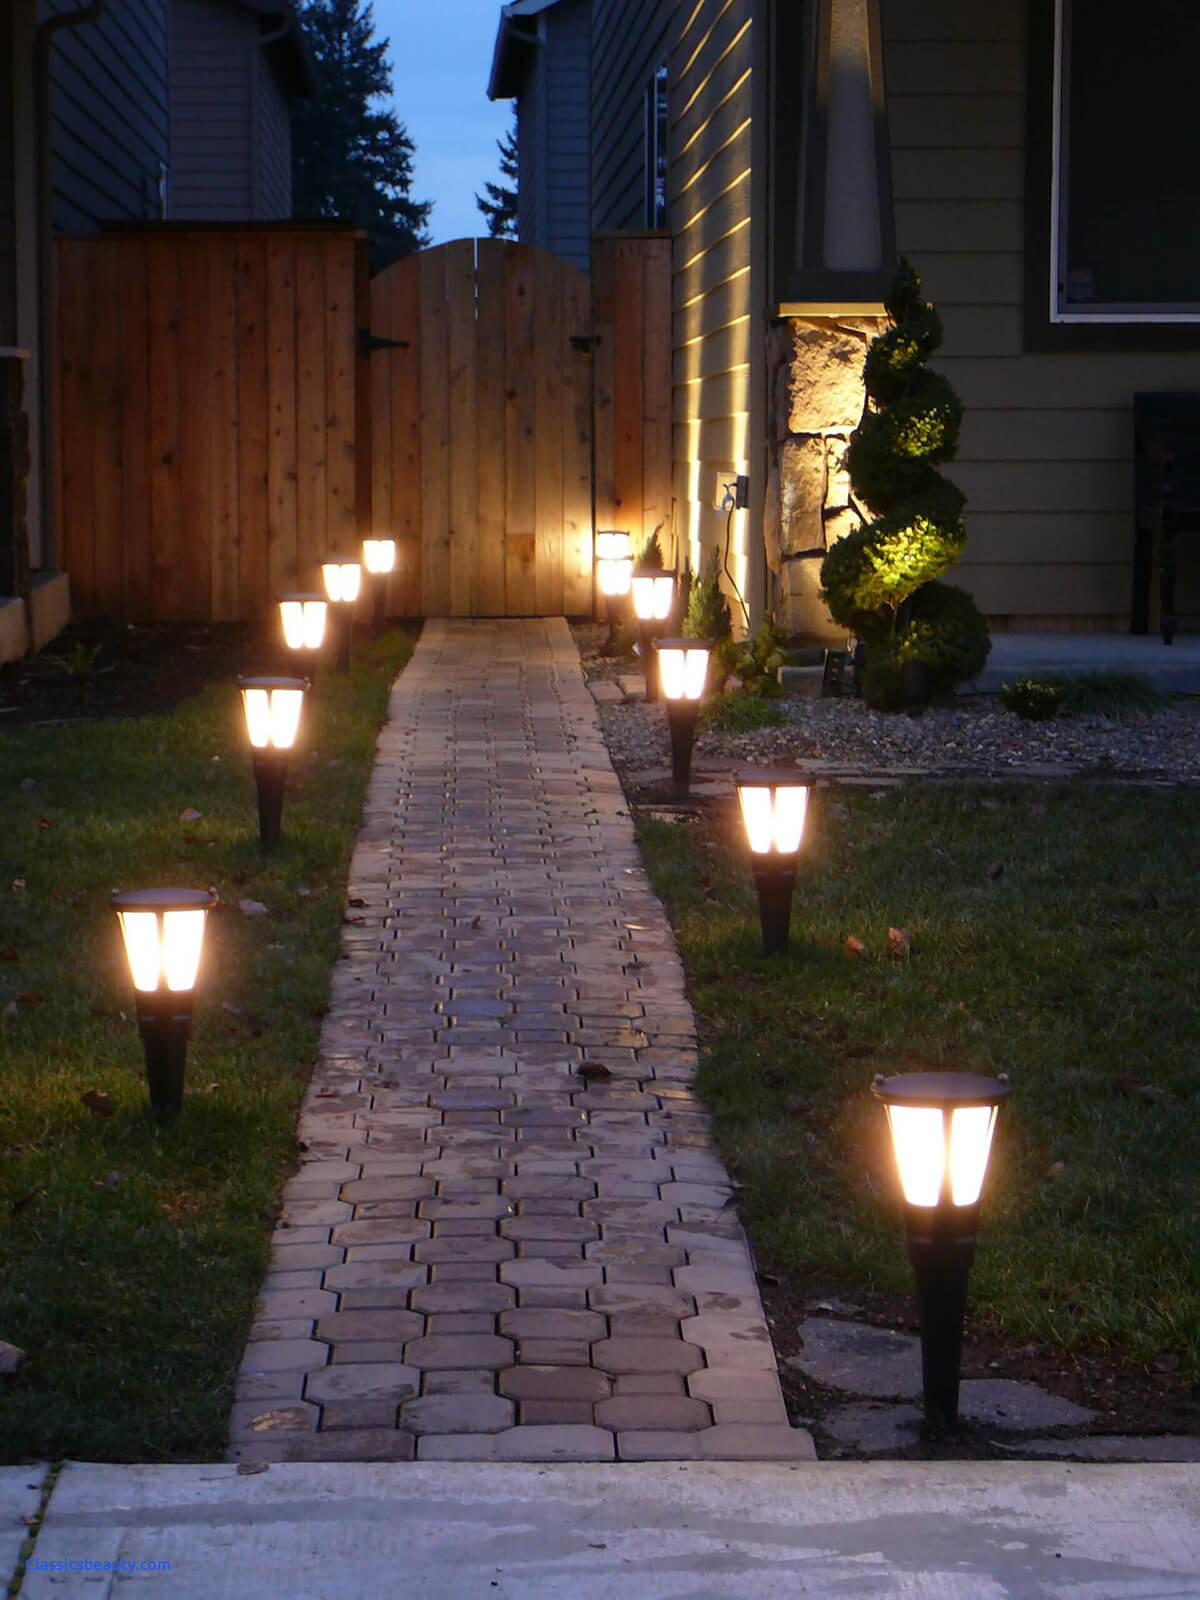 Outdoor Lighting Ideas 25 Best Landscape Lighting Ideas and Designs for 2019